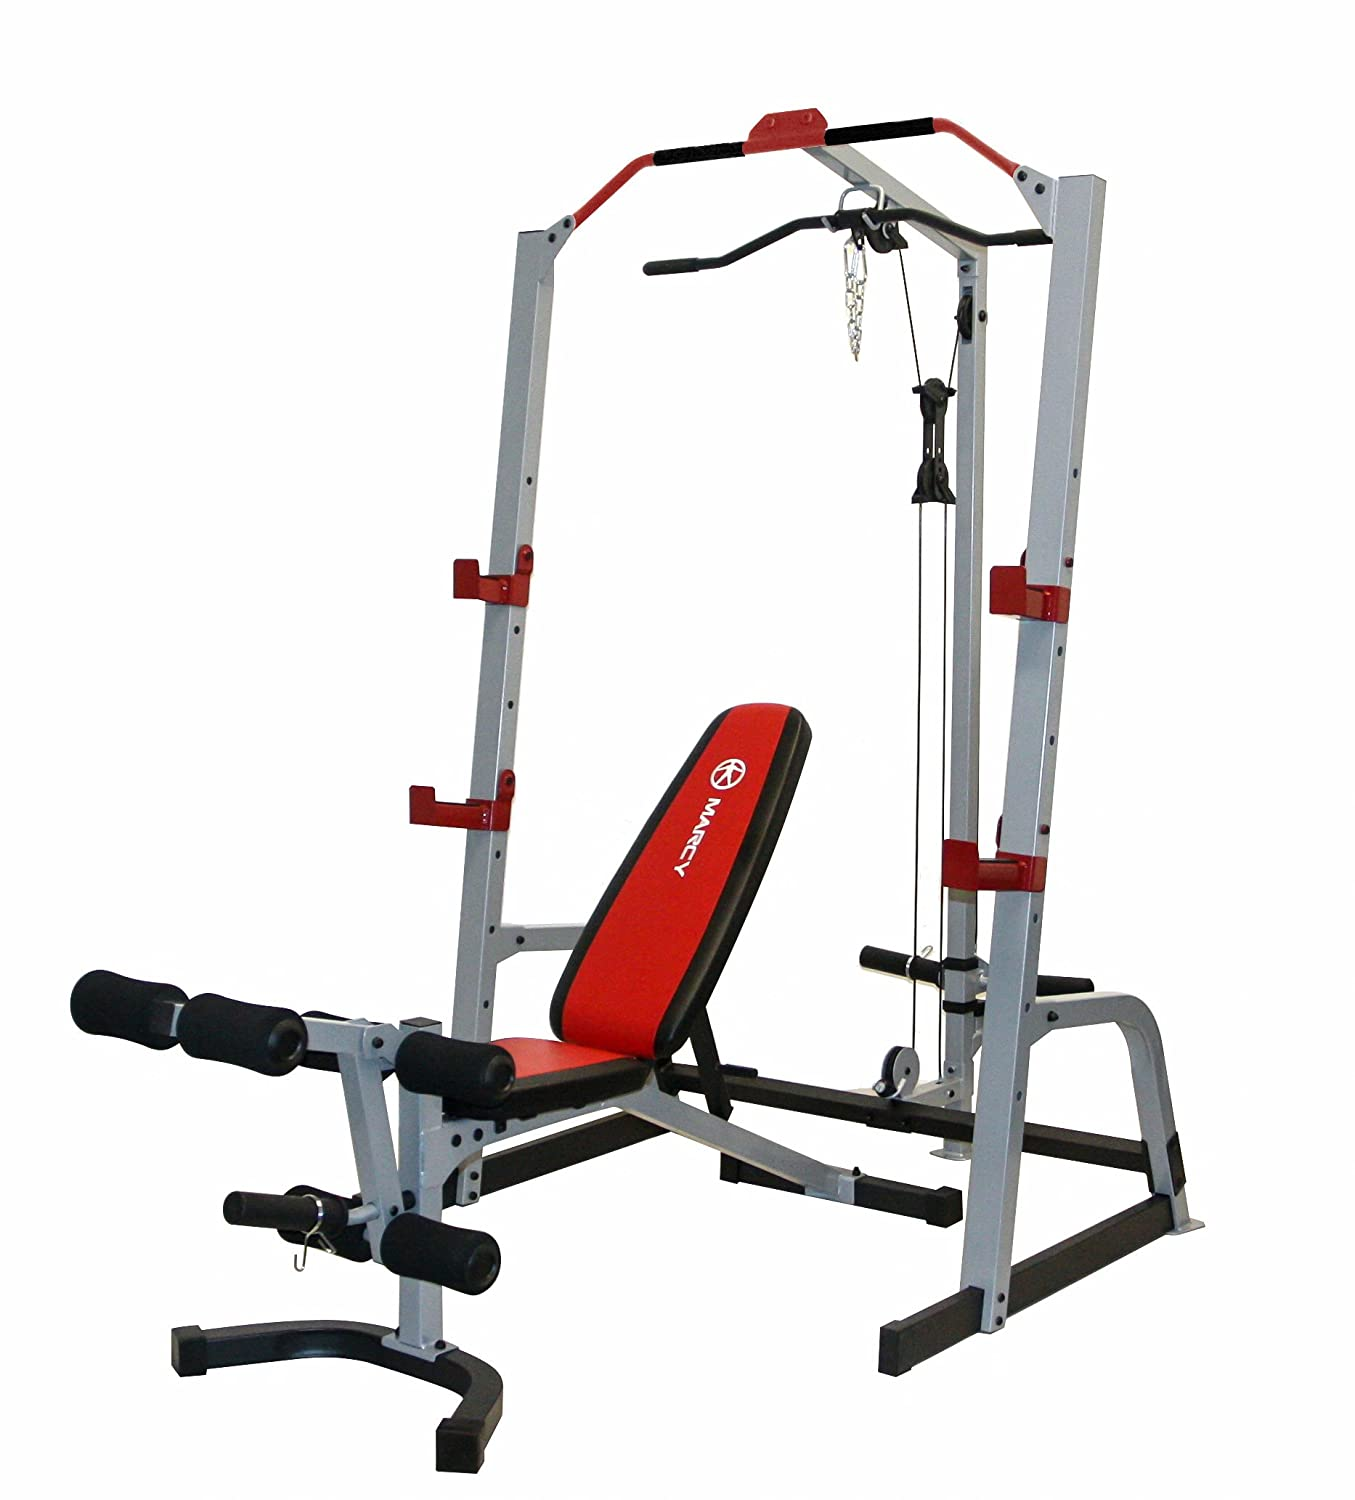 Academy sports bench press 28 images academy sports bench press militariart com academy Academy weight bench